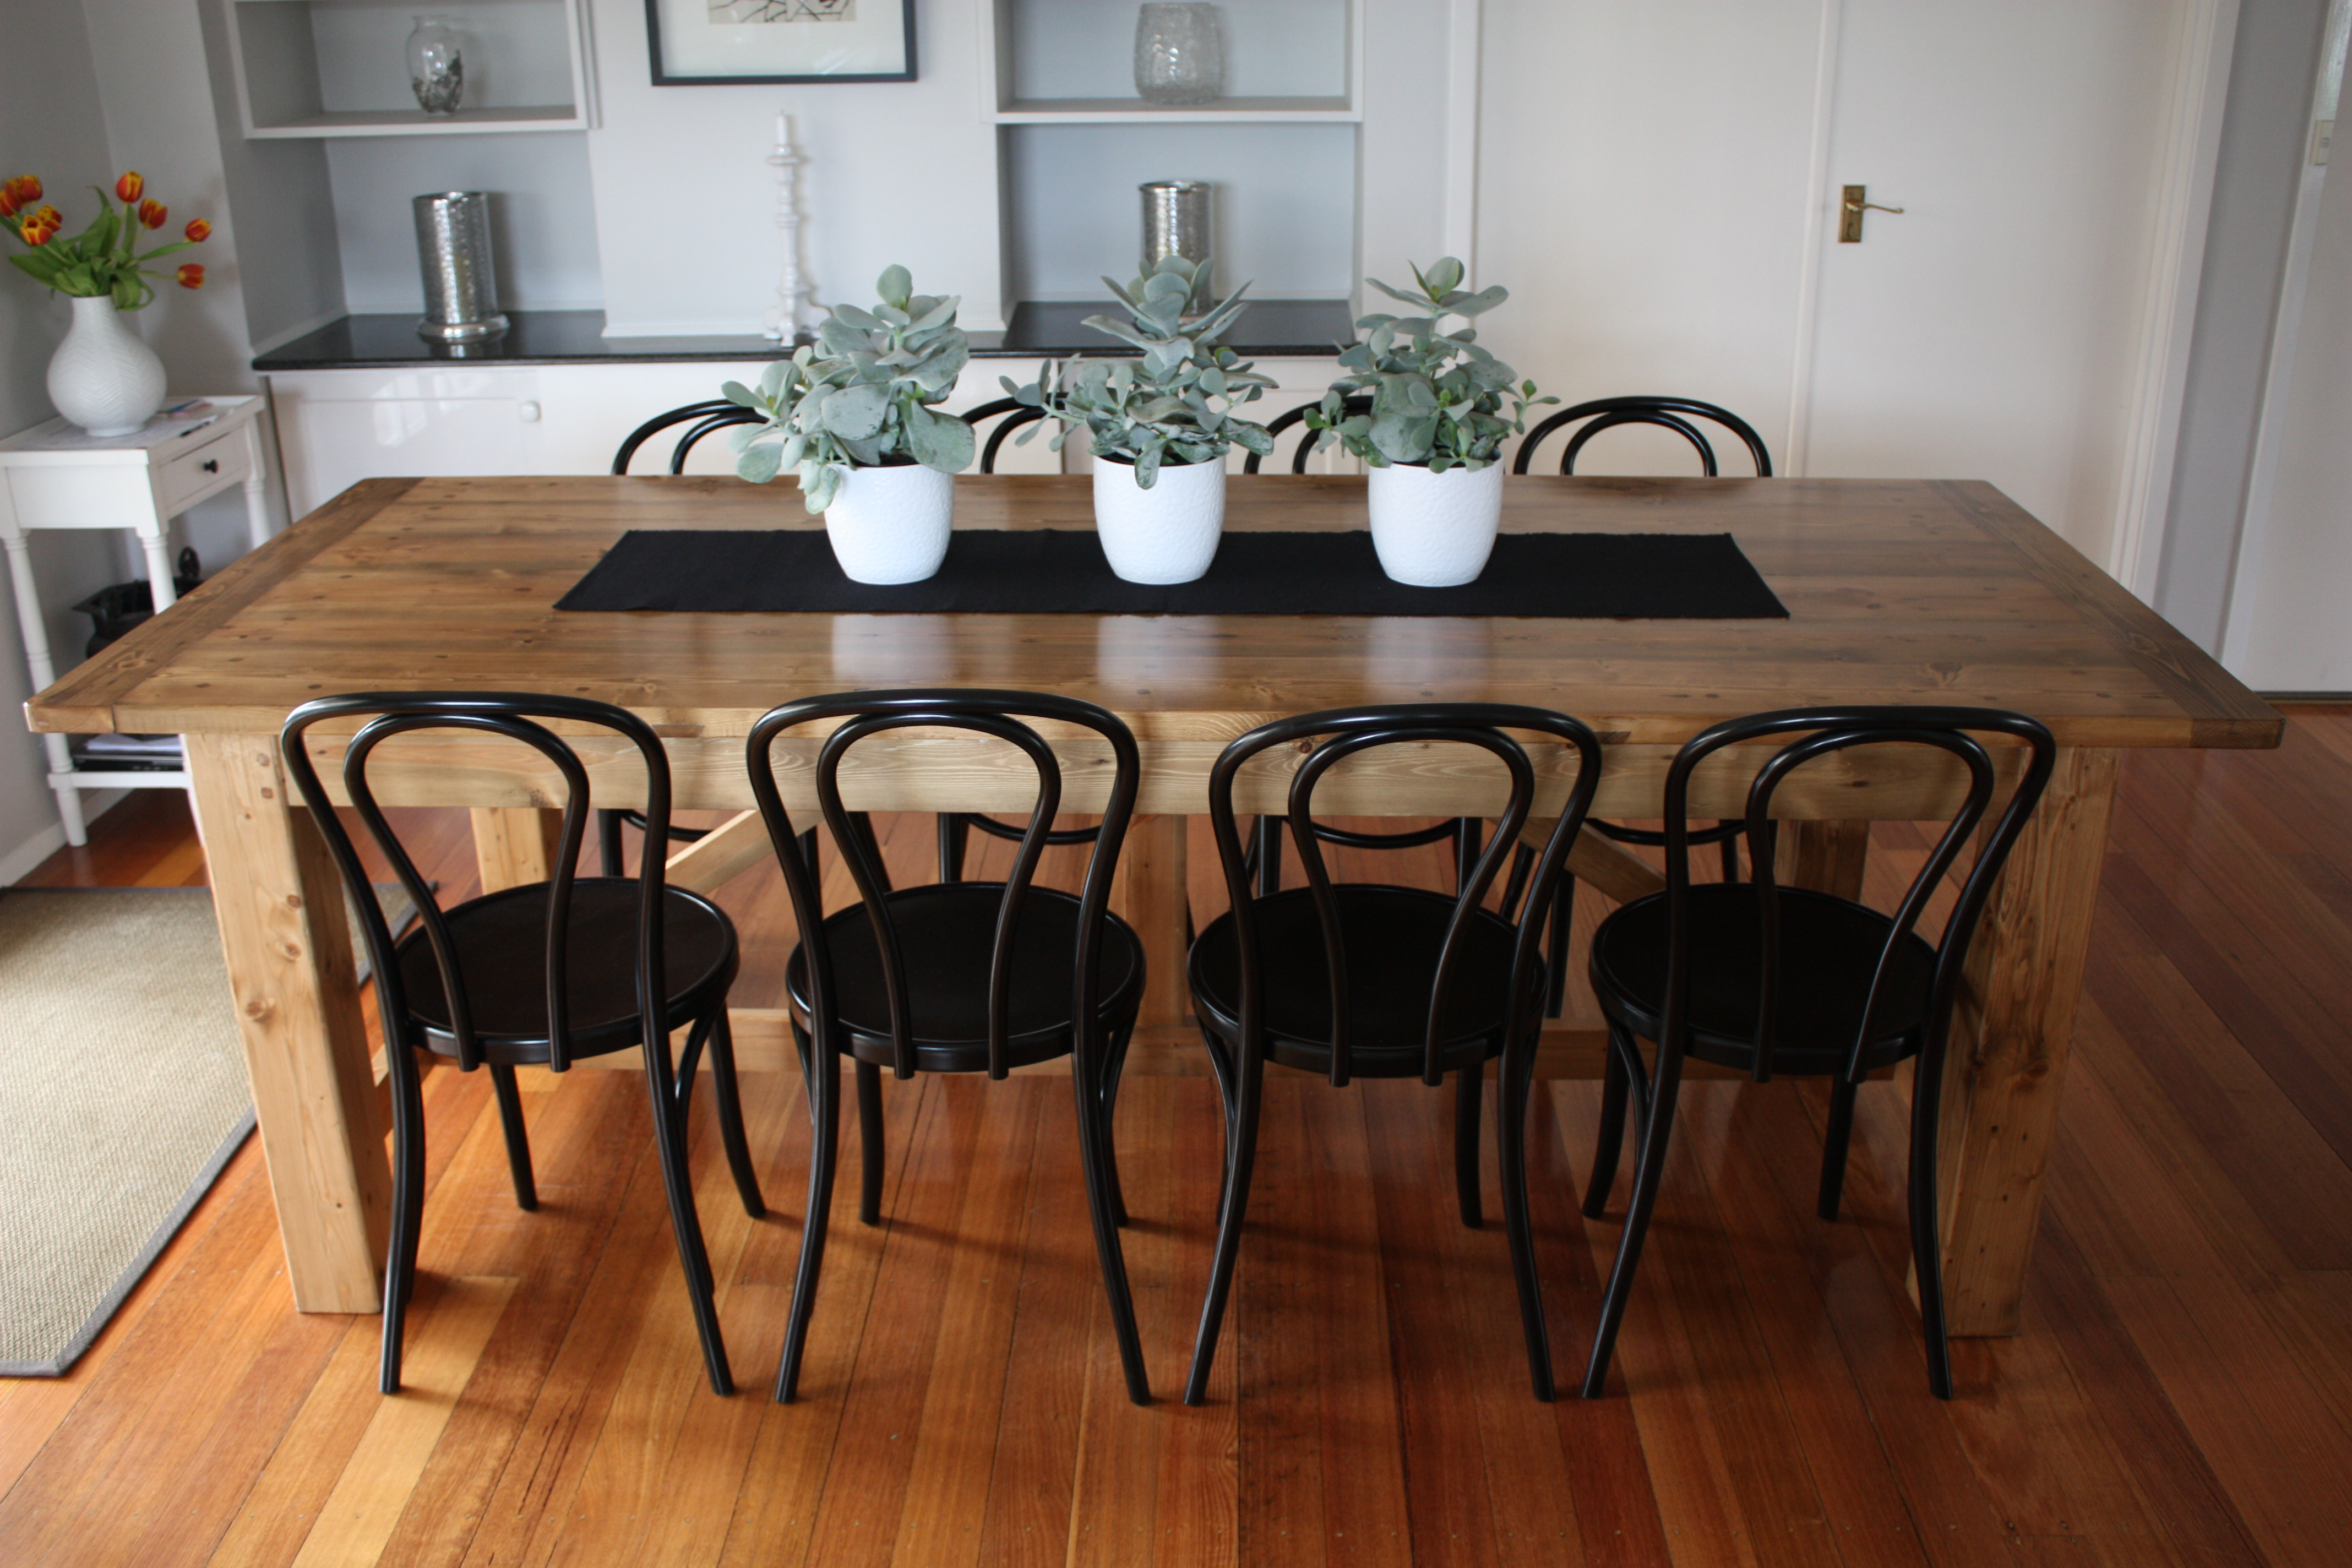 matching bentwood chairs with your house kitchen chairs for sale custom made dining table bentwood chairs 6